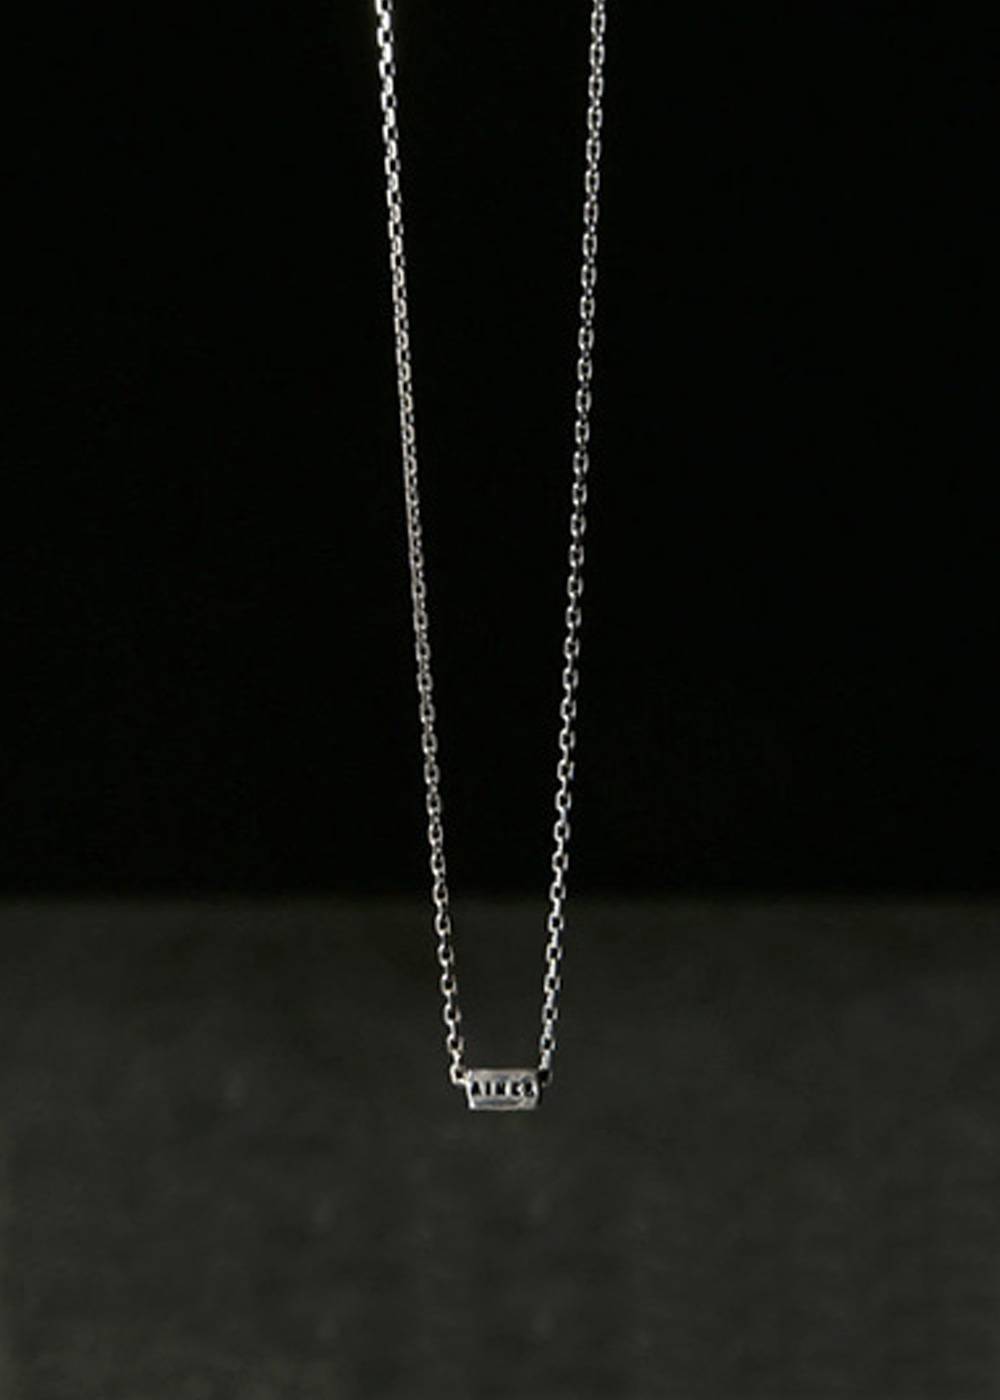 COLLIER AIMER, RÊVER, RIRE ARGENT (N3A)